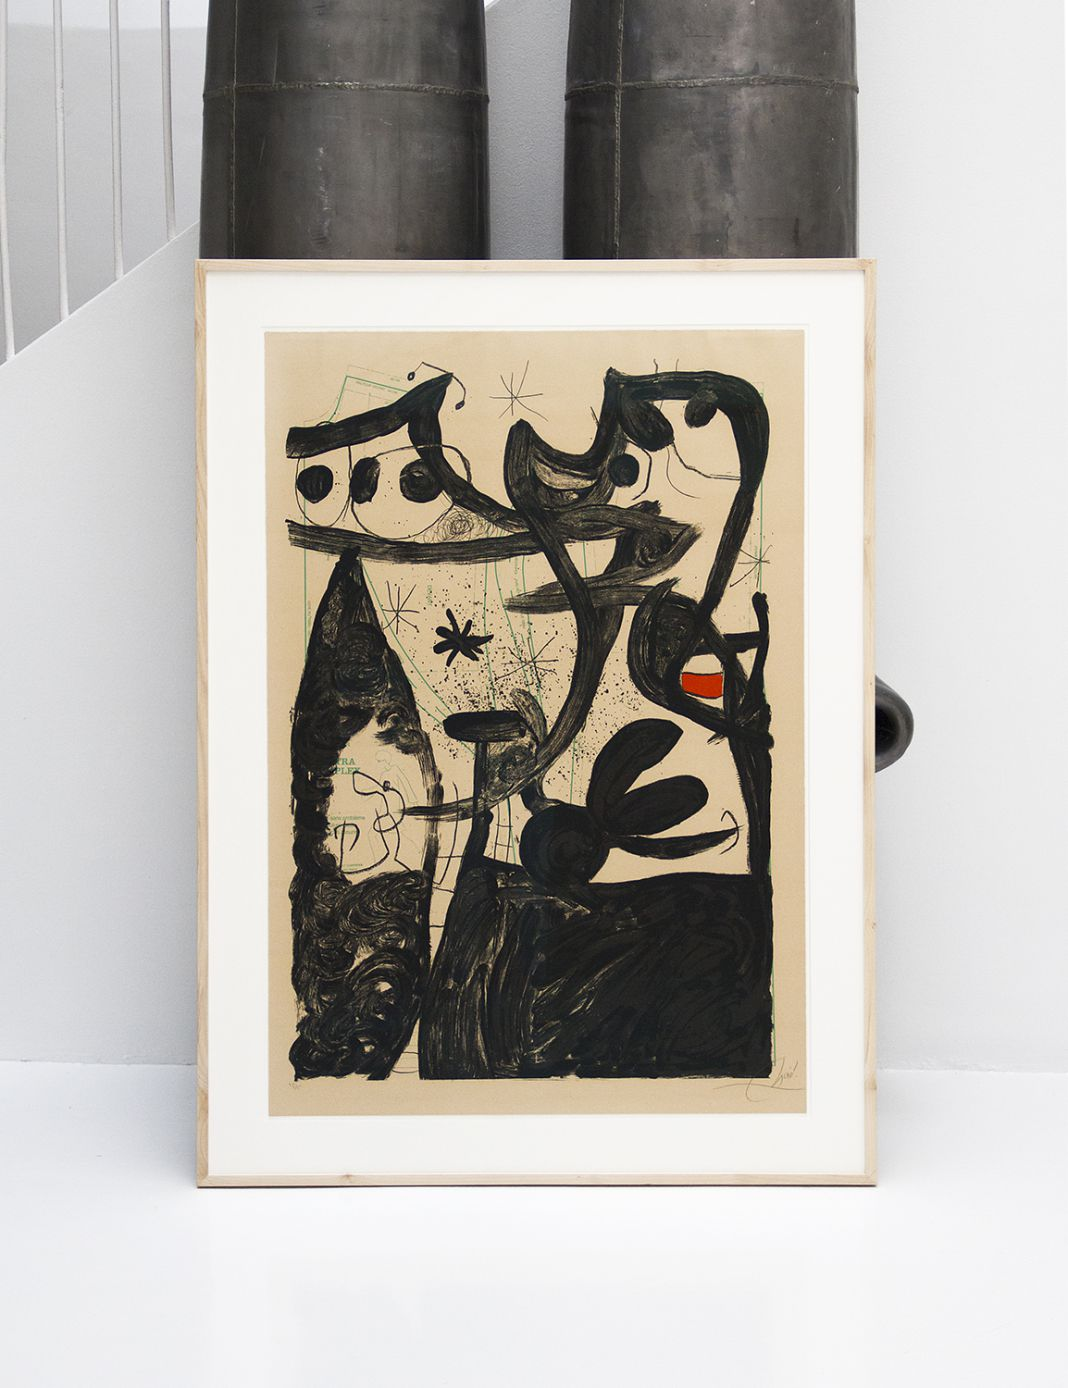 Mannequin parade at the North Pole. Joan Miró. Signed,49/75.